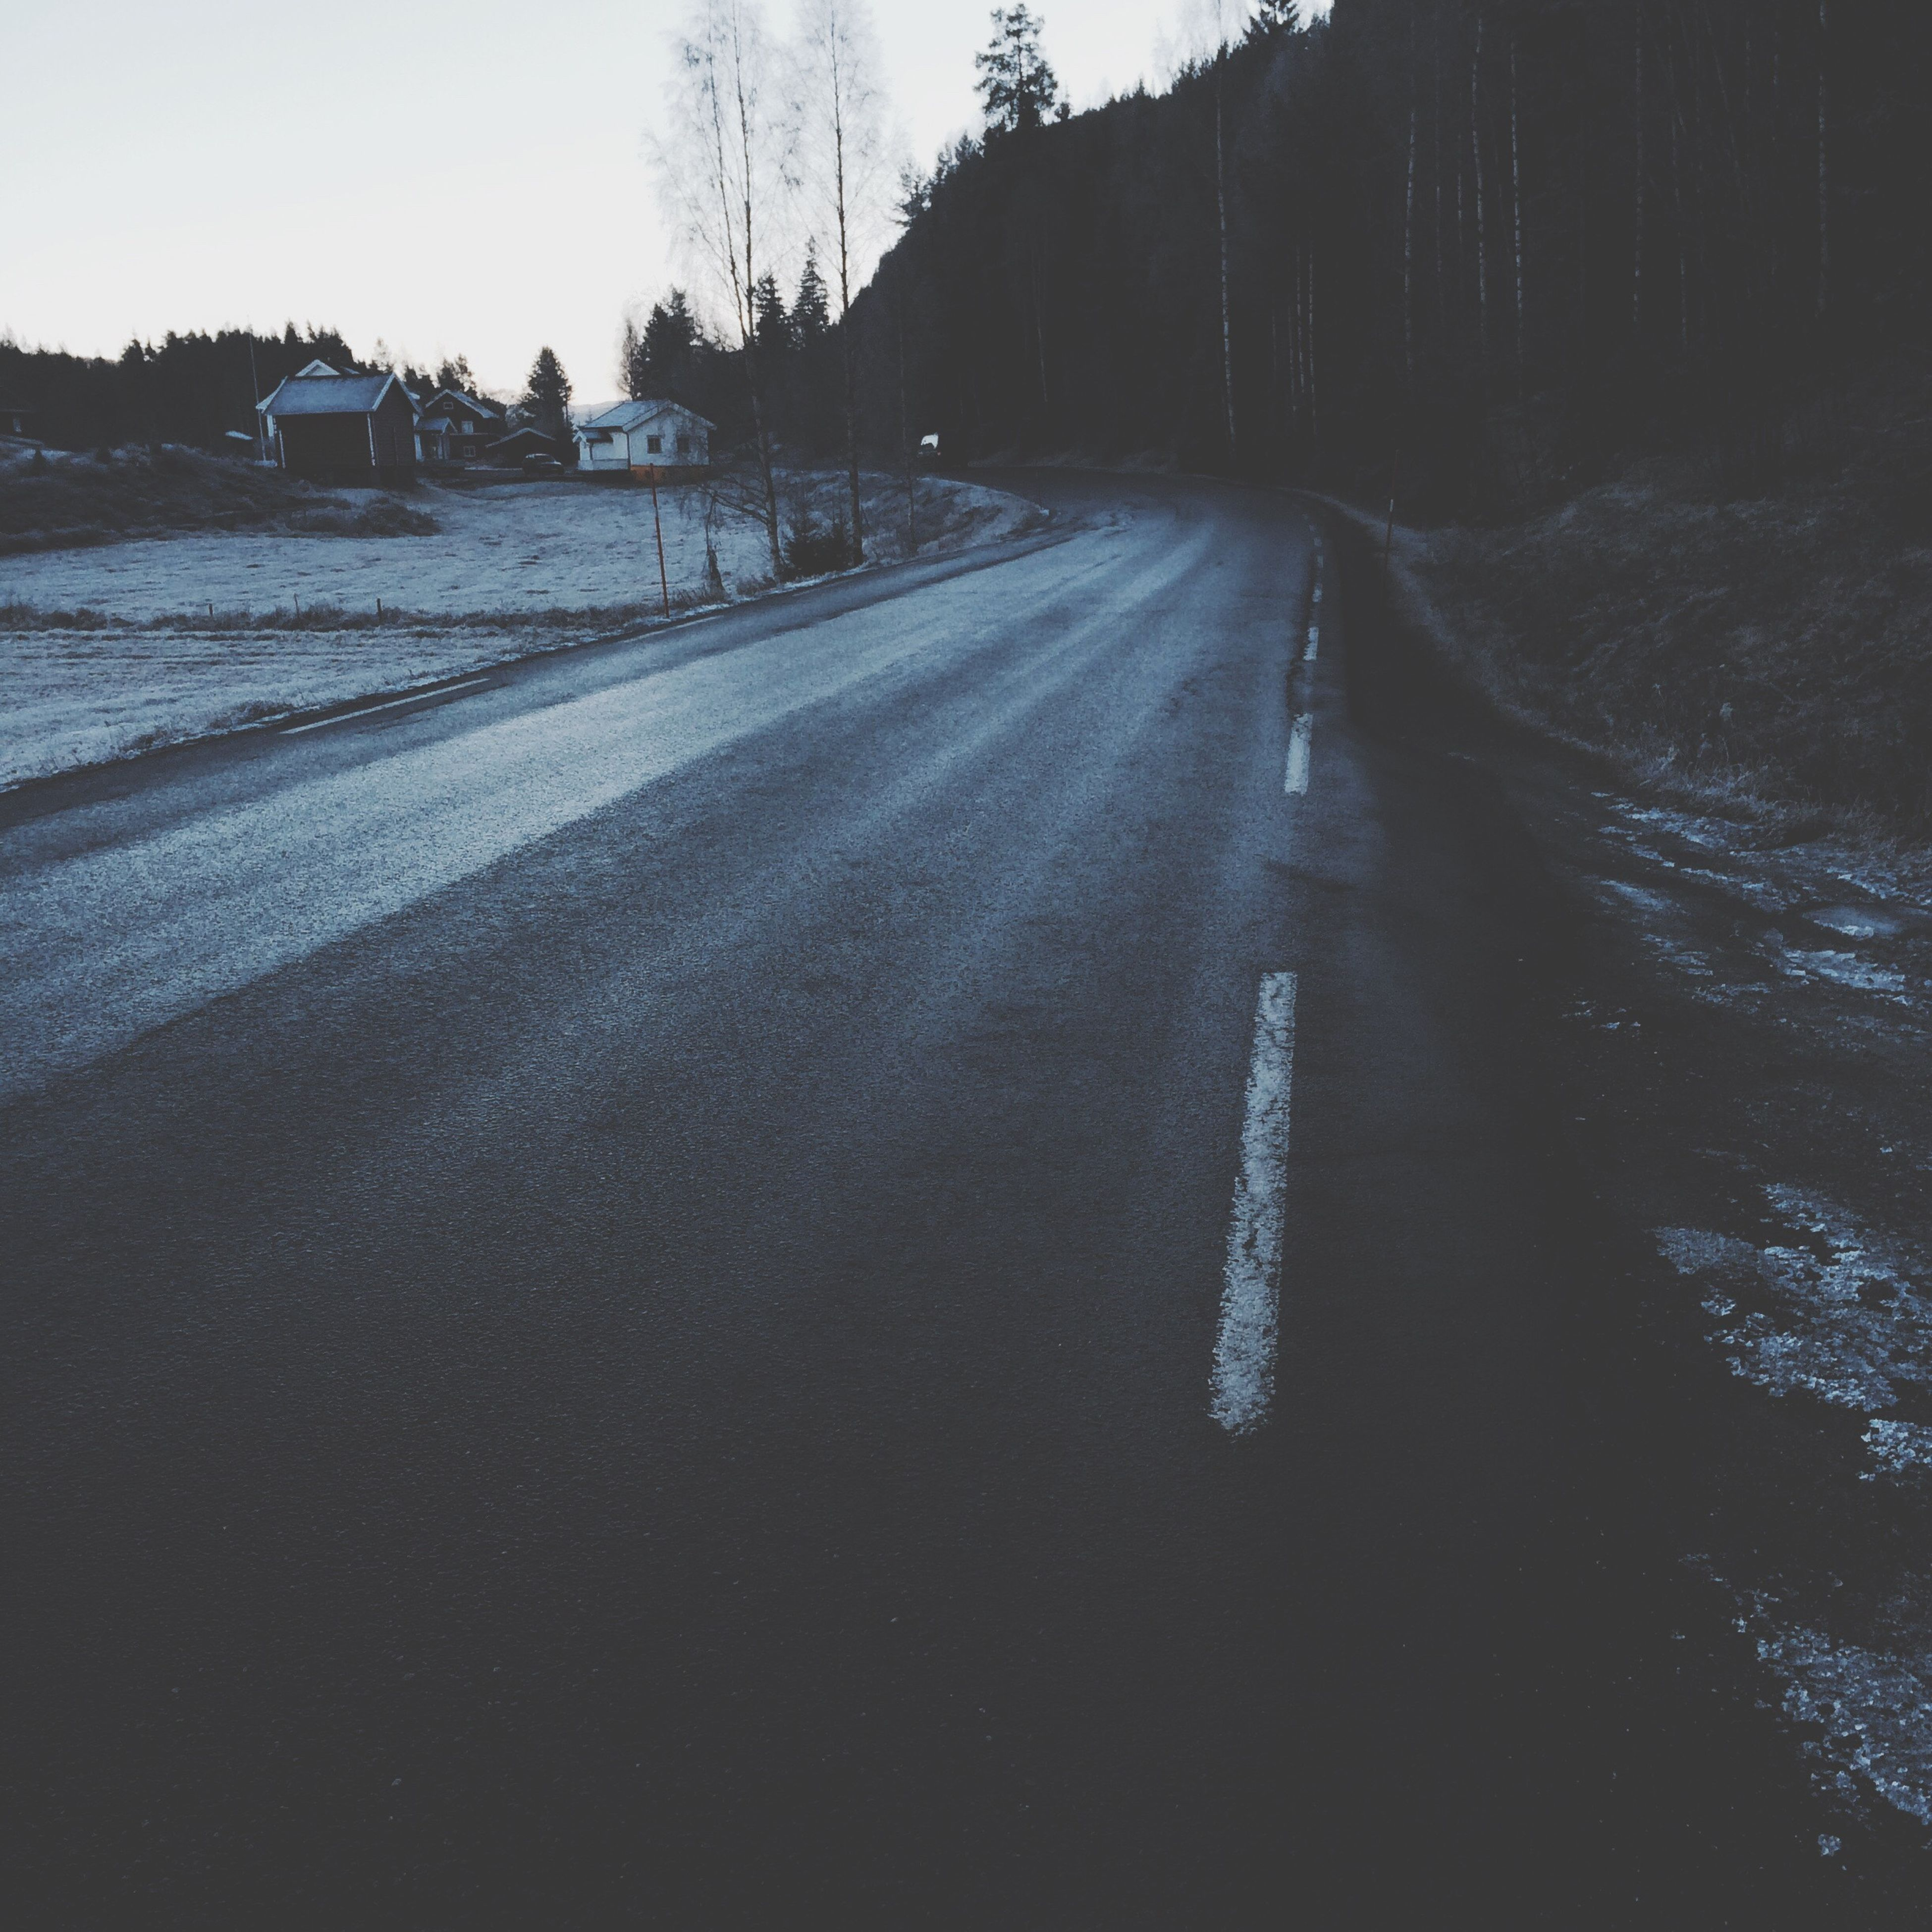 the way forward, road, transportation, diminishing perspective, snow, winter, vanishing point, tree, cold temperature, road marking, street, tranquility, nature, tranquil scene, asphalt, empty road, sky, landscape, weather, outdoors